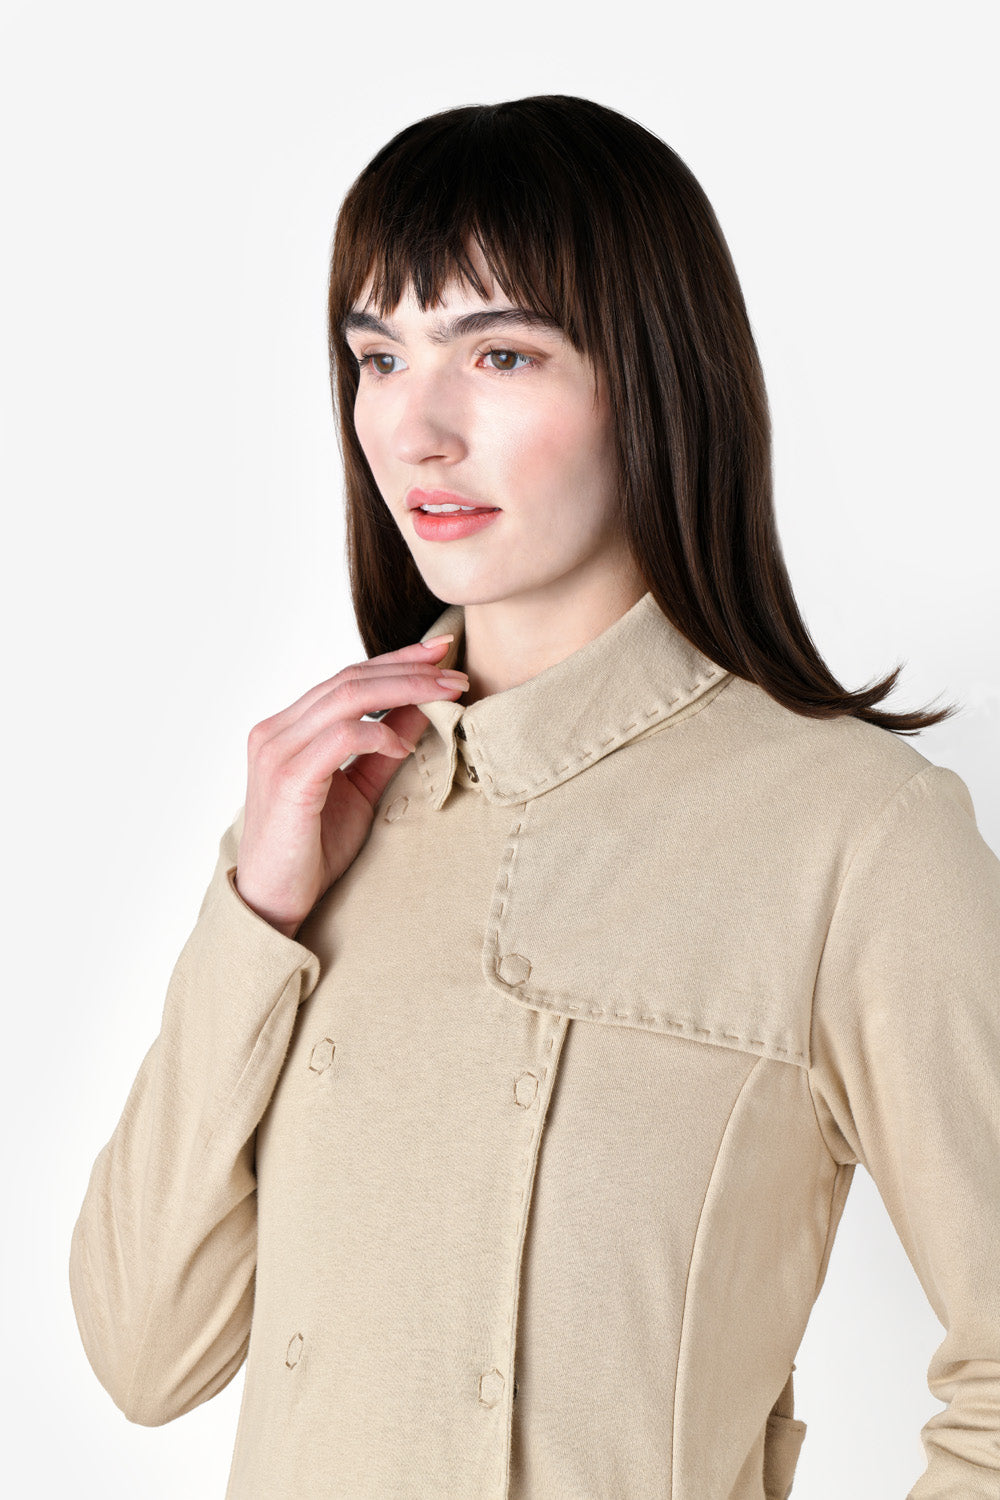 alabama chanin the trench coat fitted handsewn outerwear on model